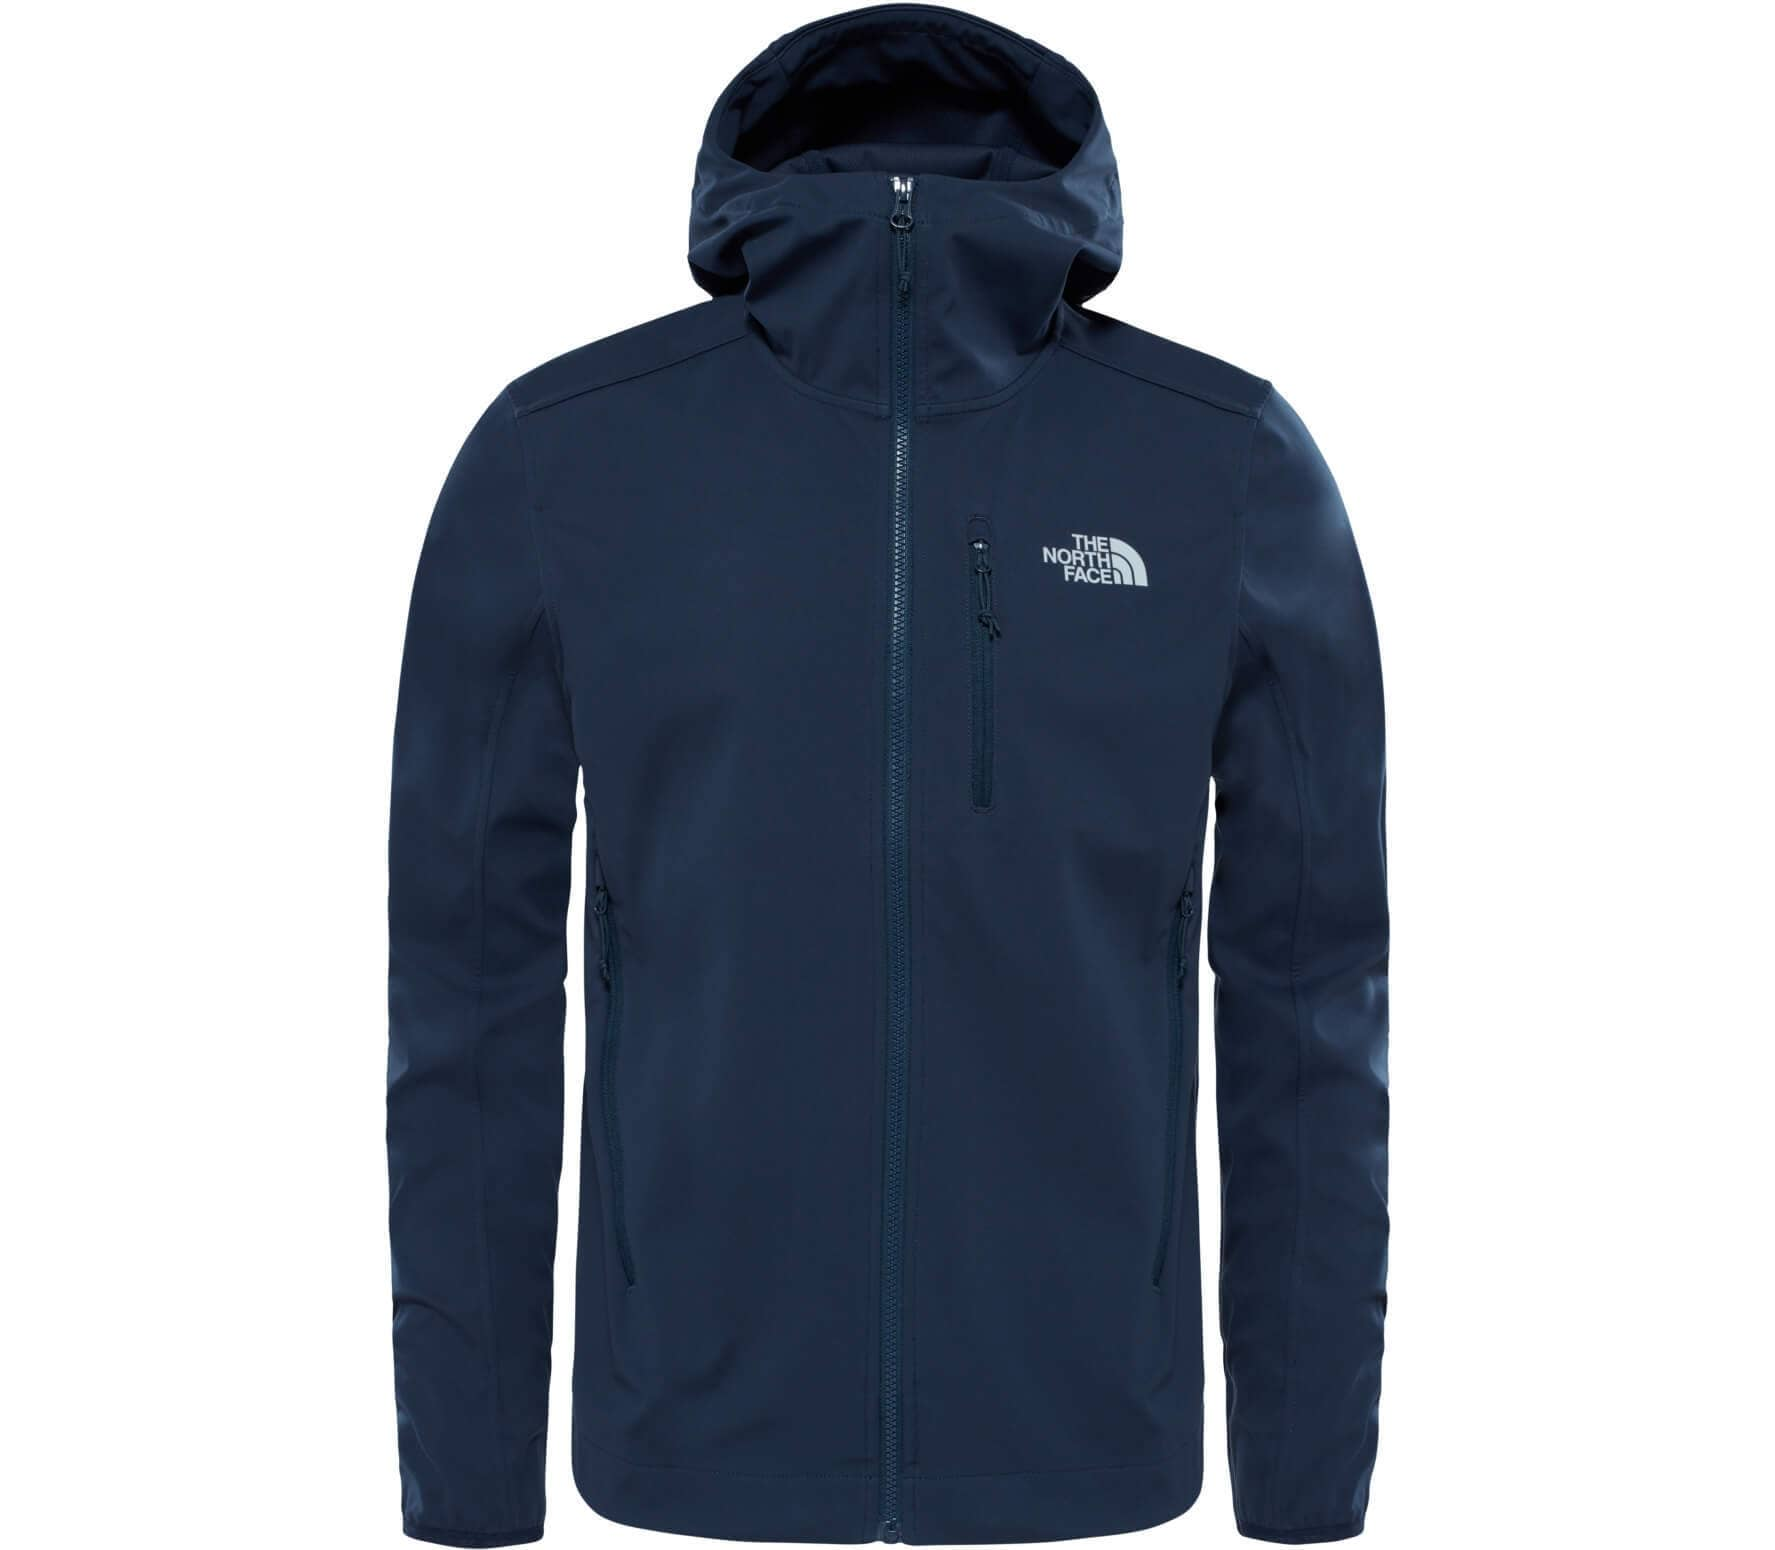 The North Face Tansa Men